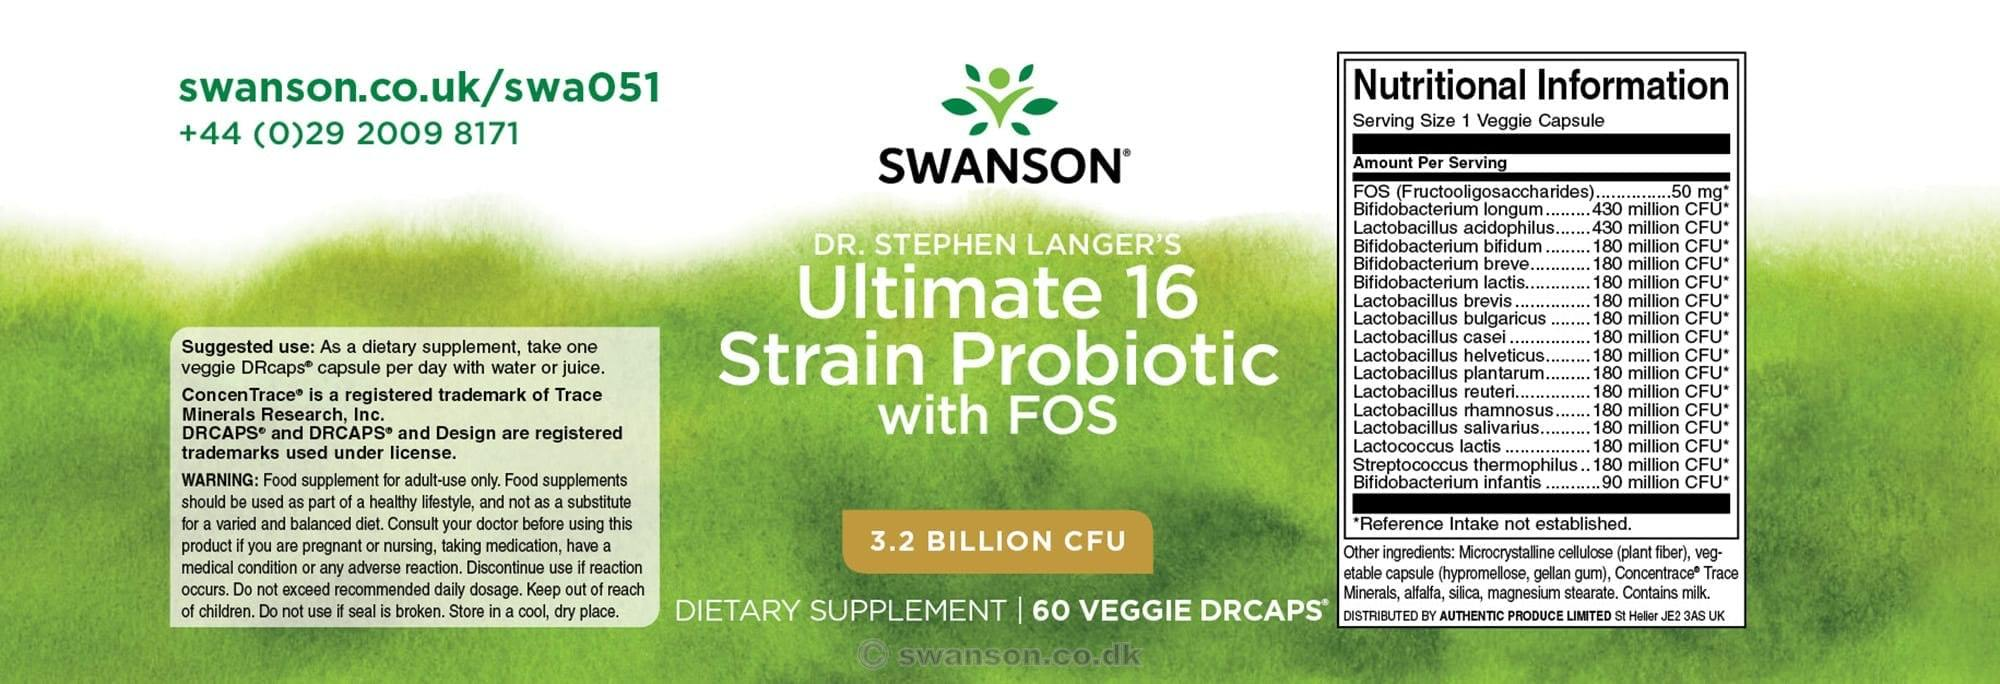 Probiotics Swanson - 16 strains - 3.2 billions of CFU - 60 capsules